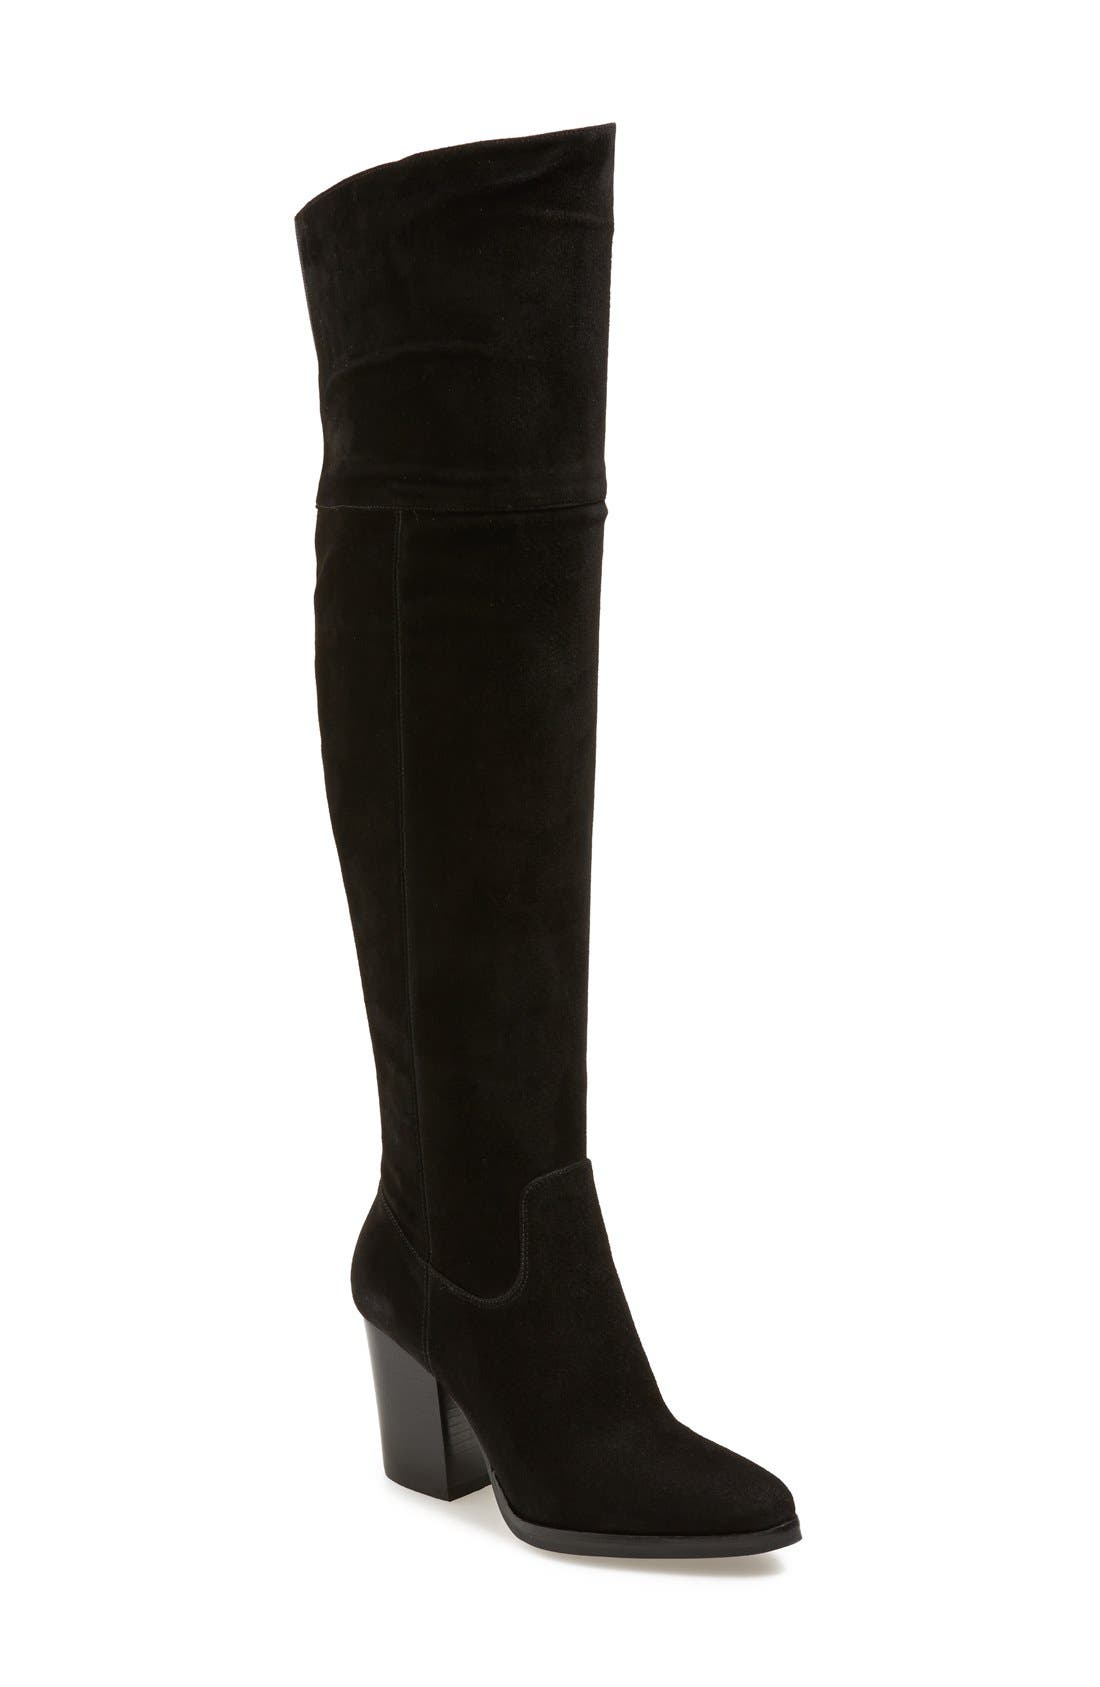 Alternate Image 1 Selected - Marc Fisher LTD 'Alana' Over the Knee Boot (Women) (Narrow Calf)